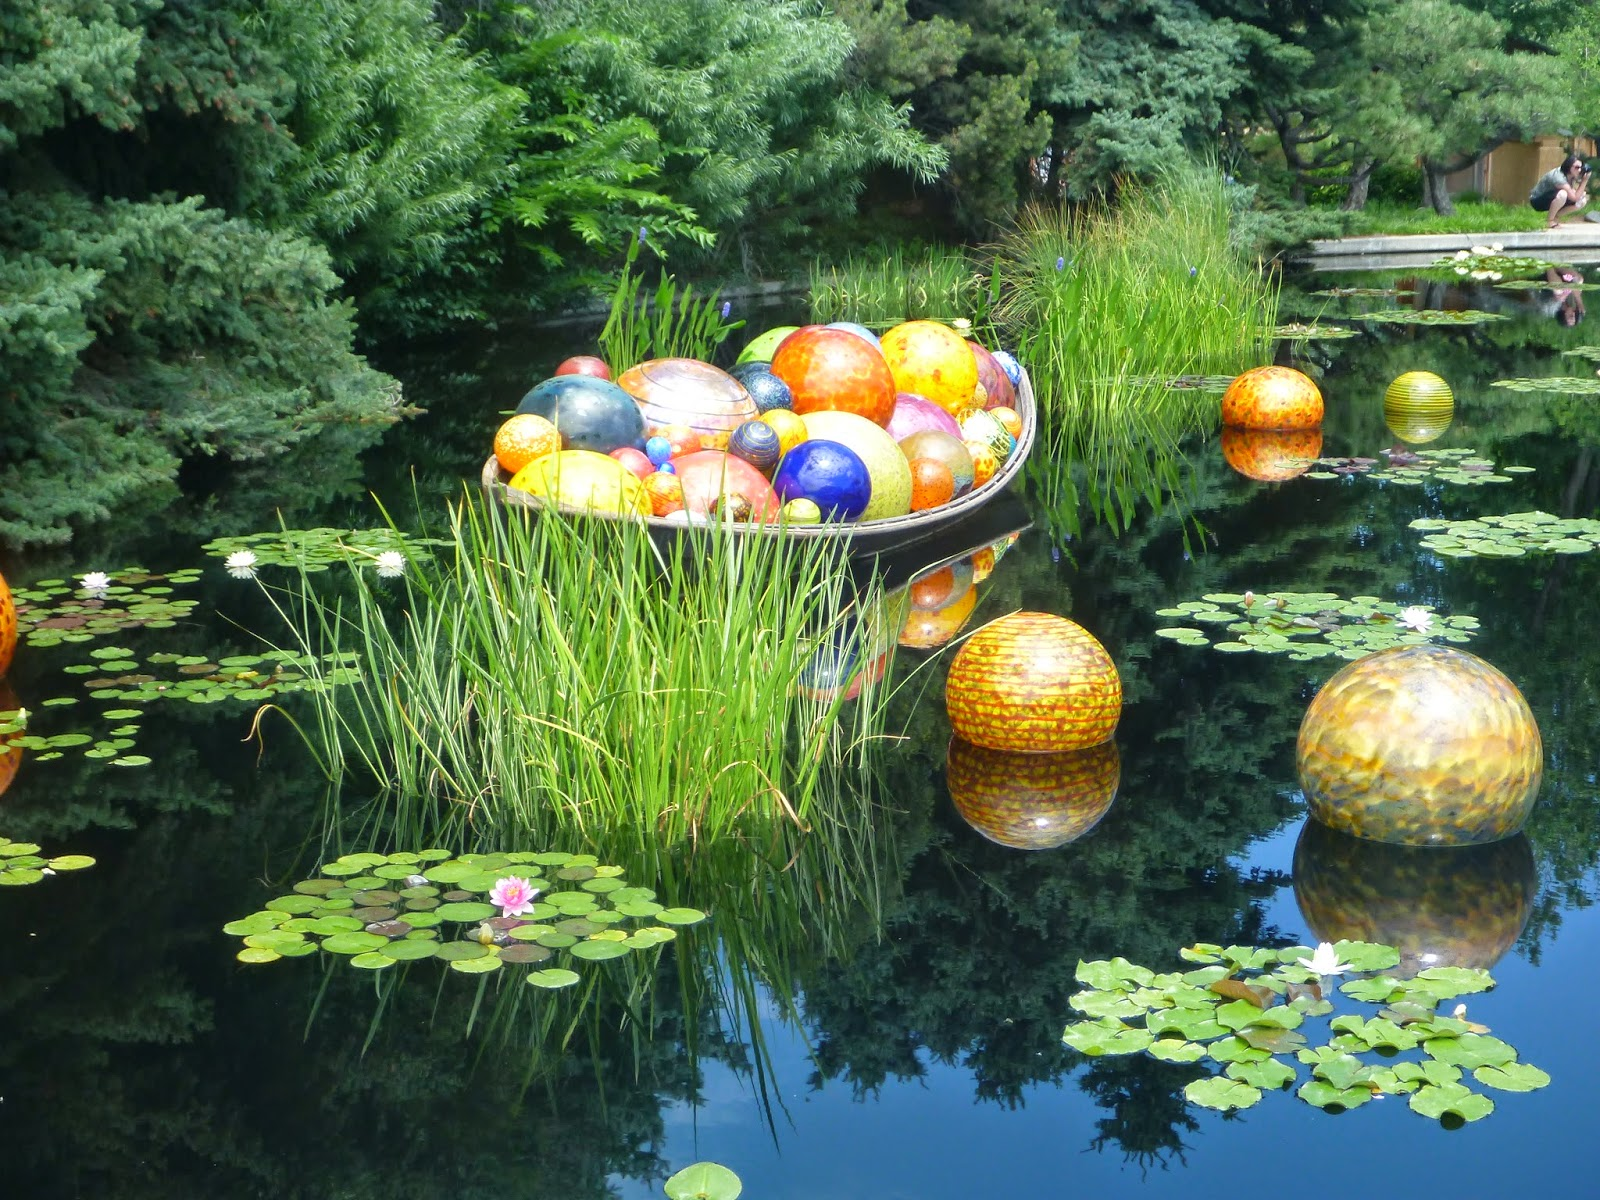 Artistic Journeys Chihuly Exhibit At The Denver Botanic Gardens